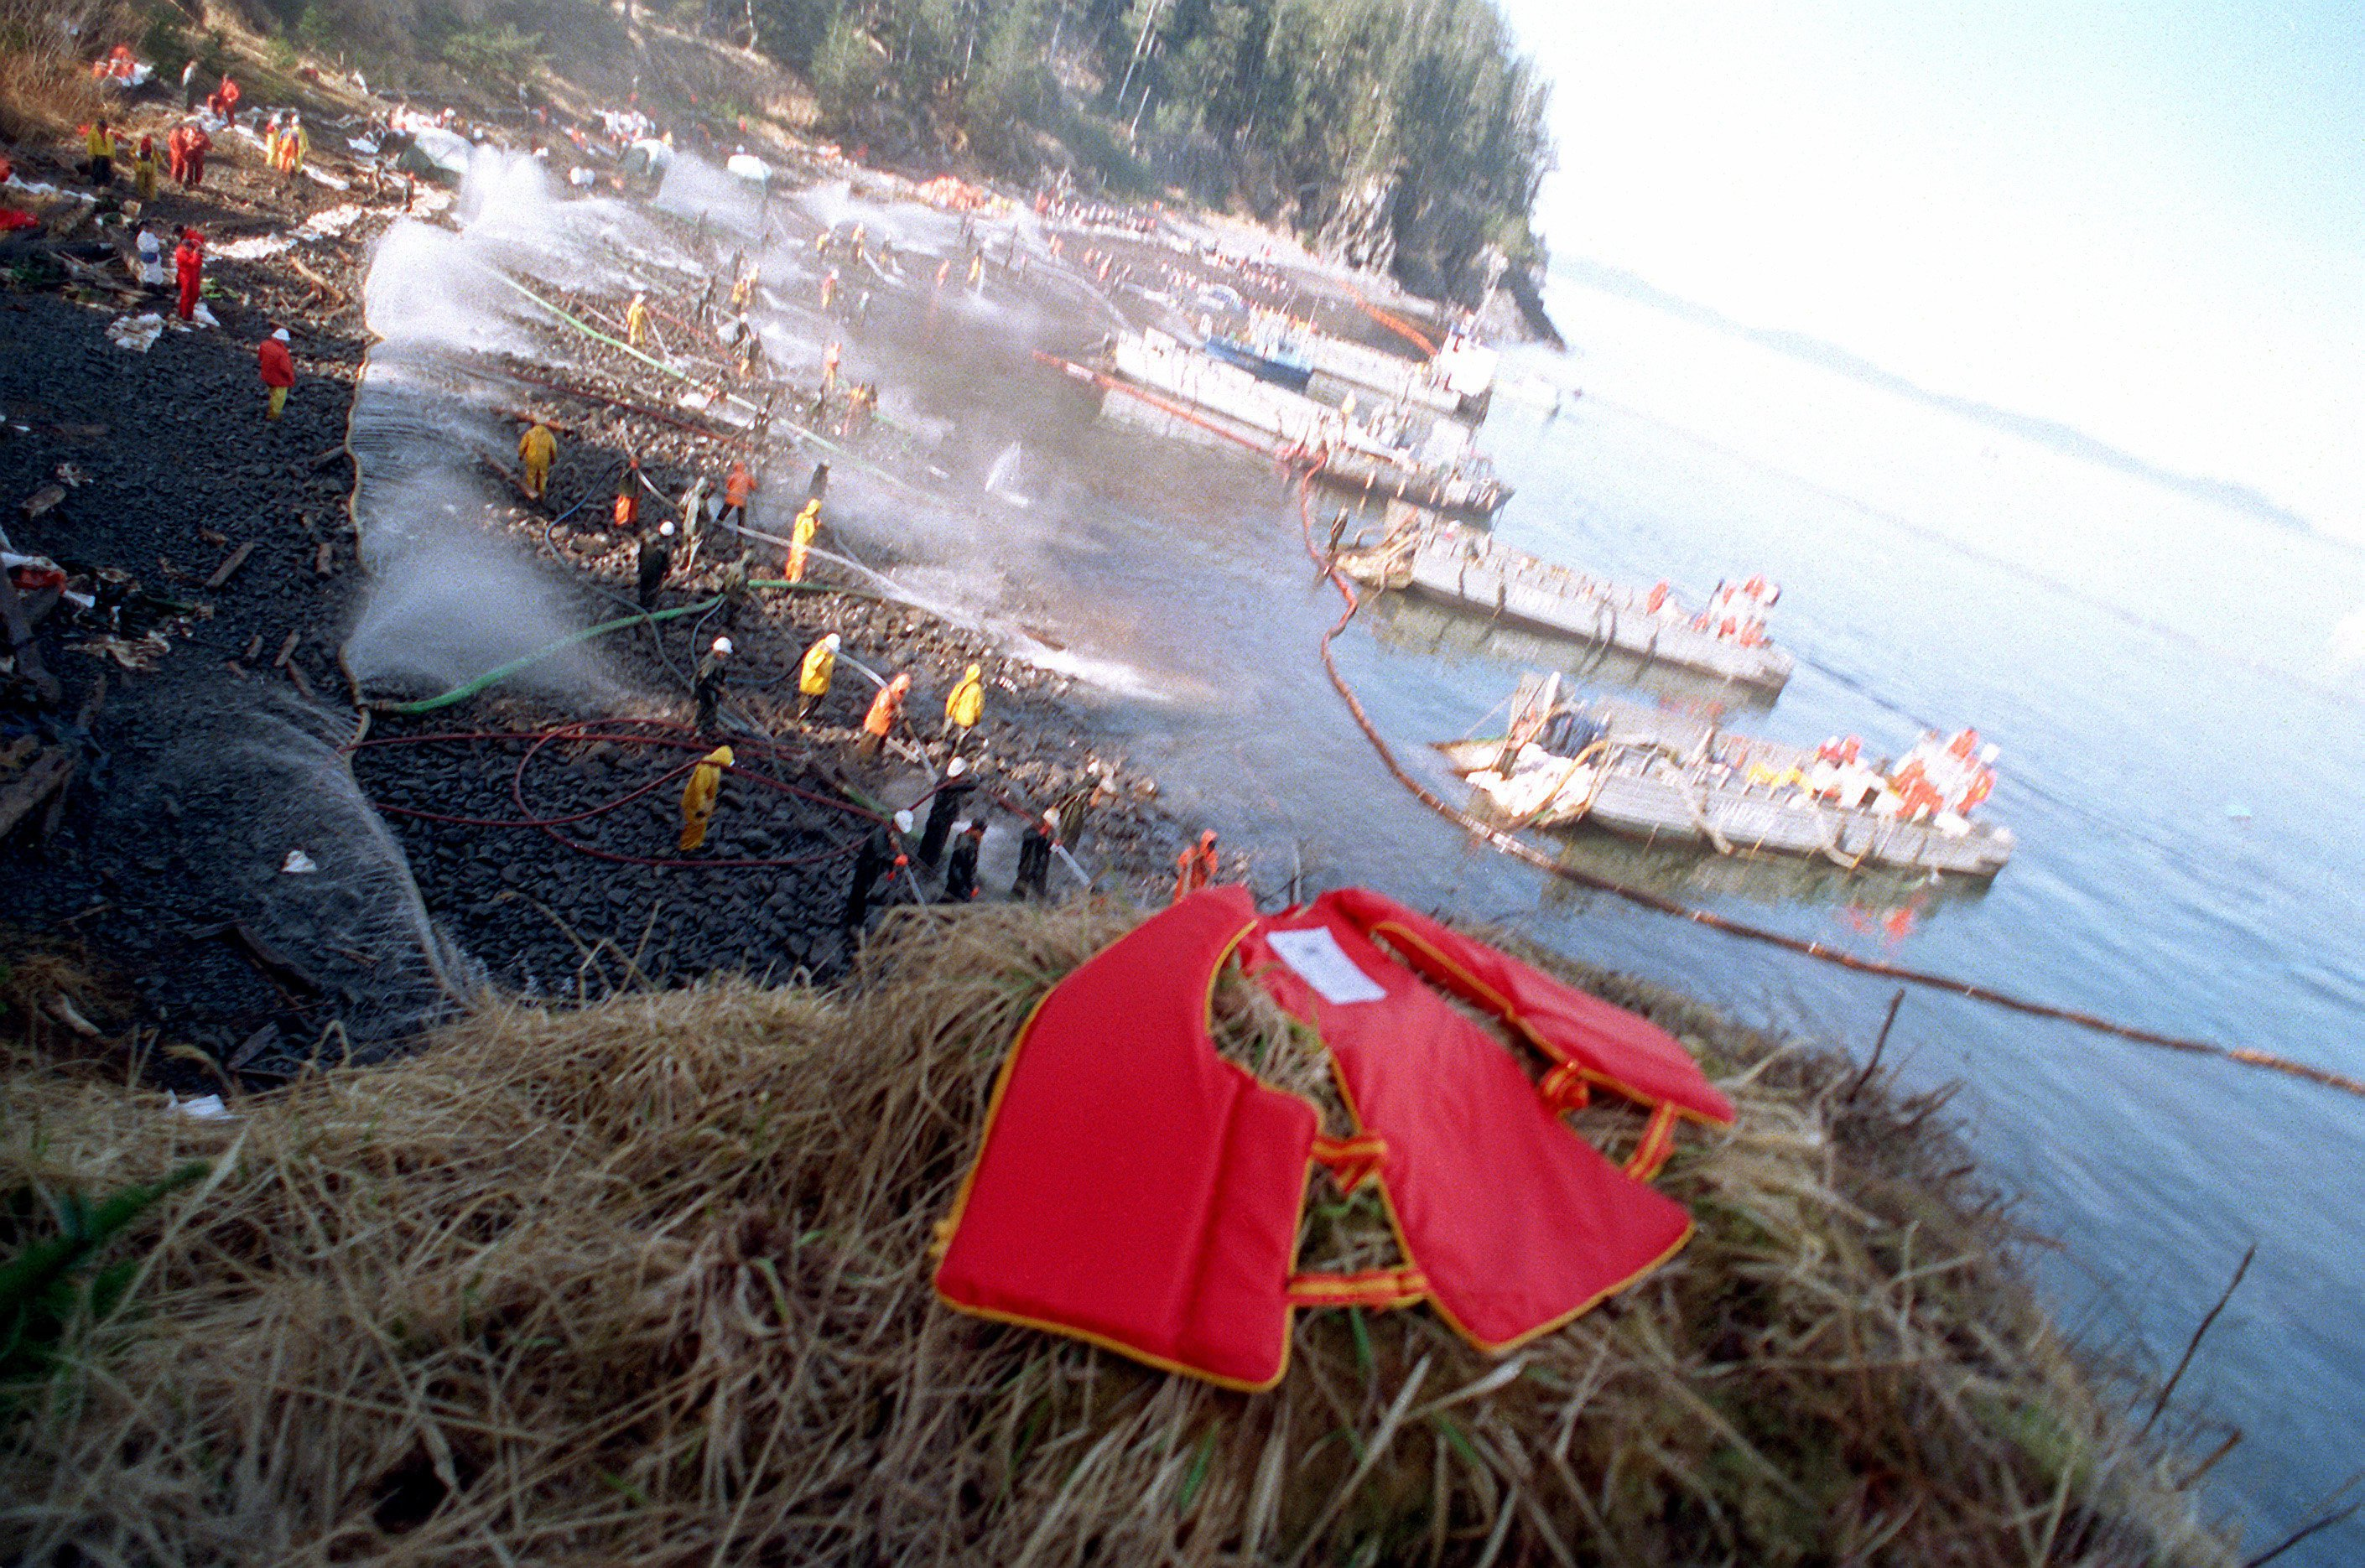 U.S. Navy Mechanized Landing Craft (LCMs) are anchored along the shoreline as Navy and civilian personnel position hoses during oil clean-up efforts on Smith island. The massive oil spill occurred when the commercial tanker Exxon Valdez ran aground while transiting the waters of Prince William Sound on March 24th.